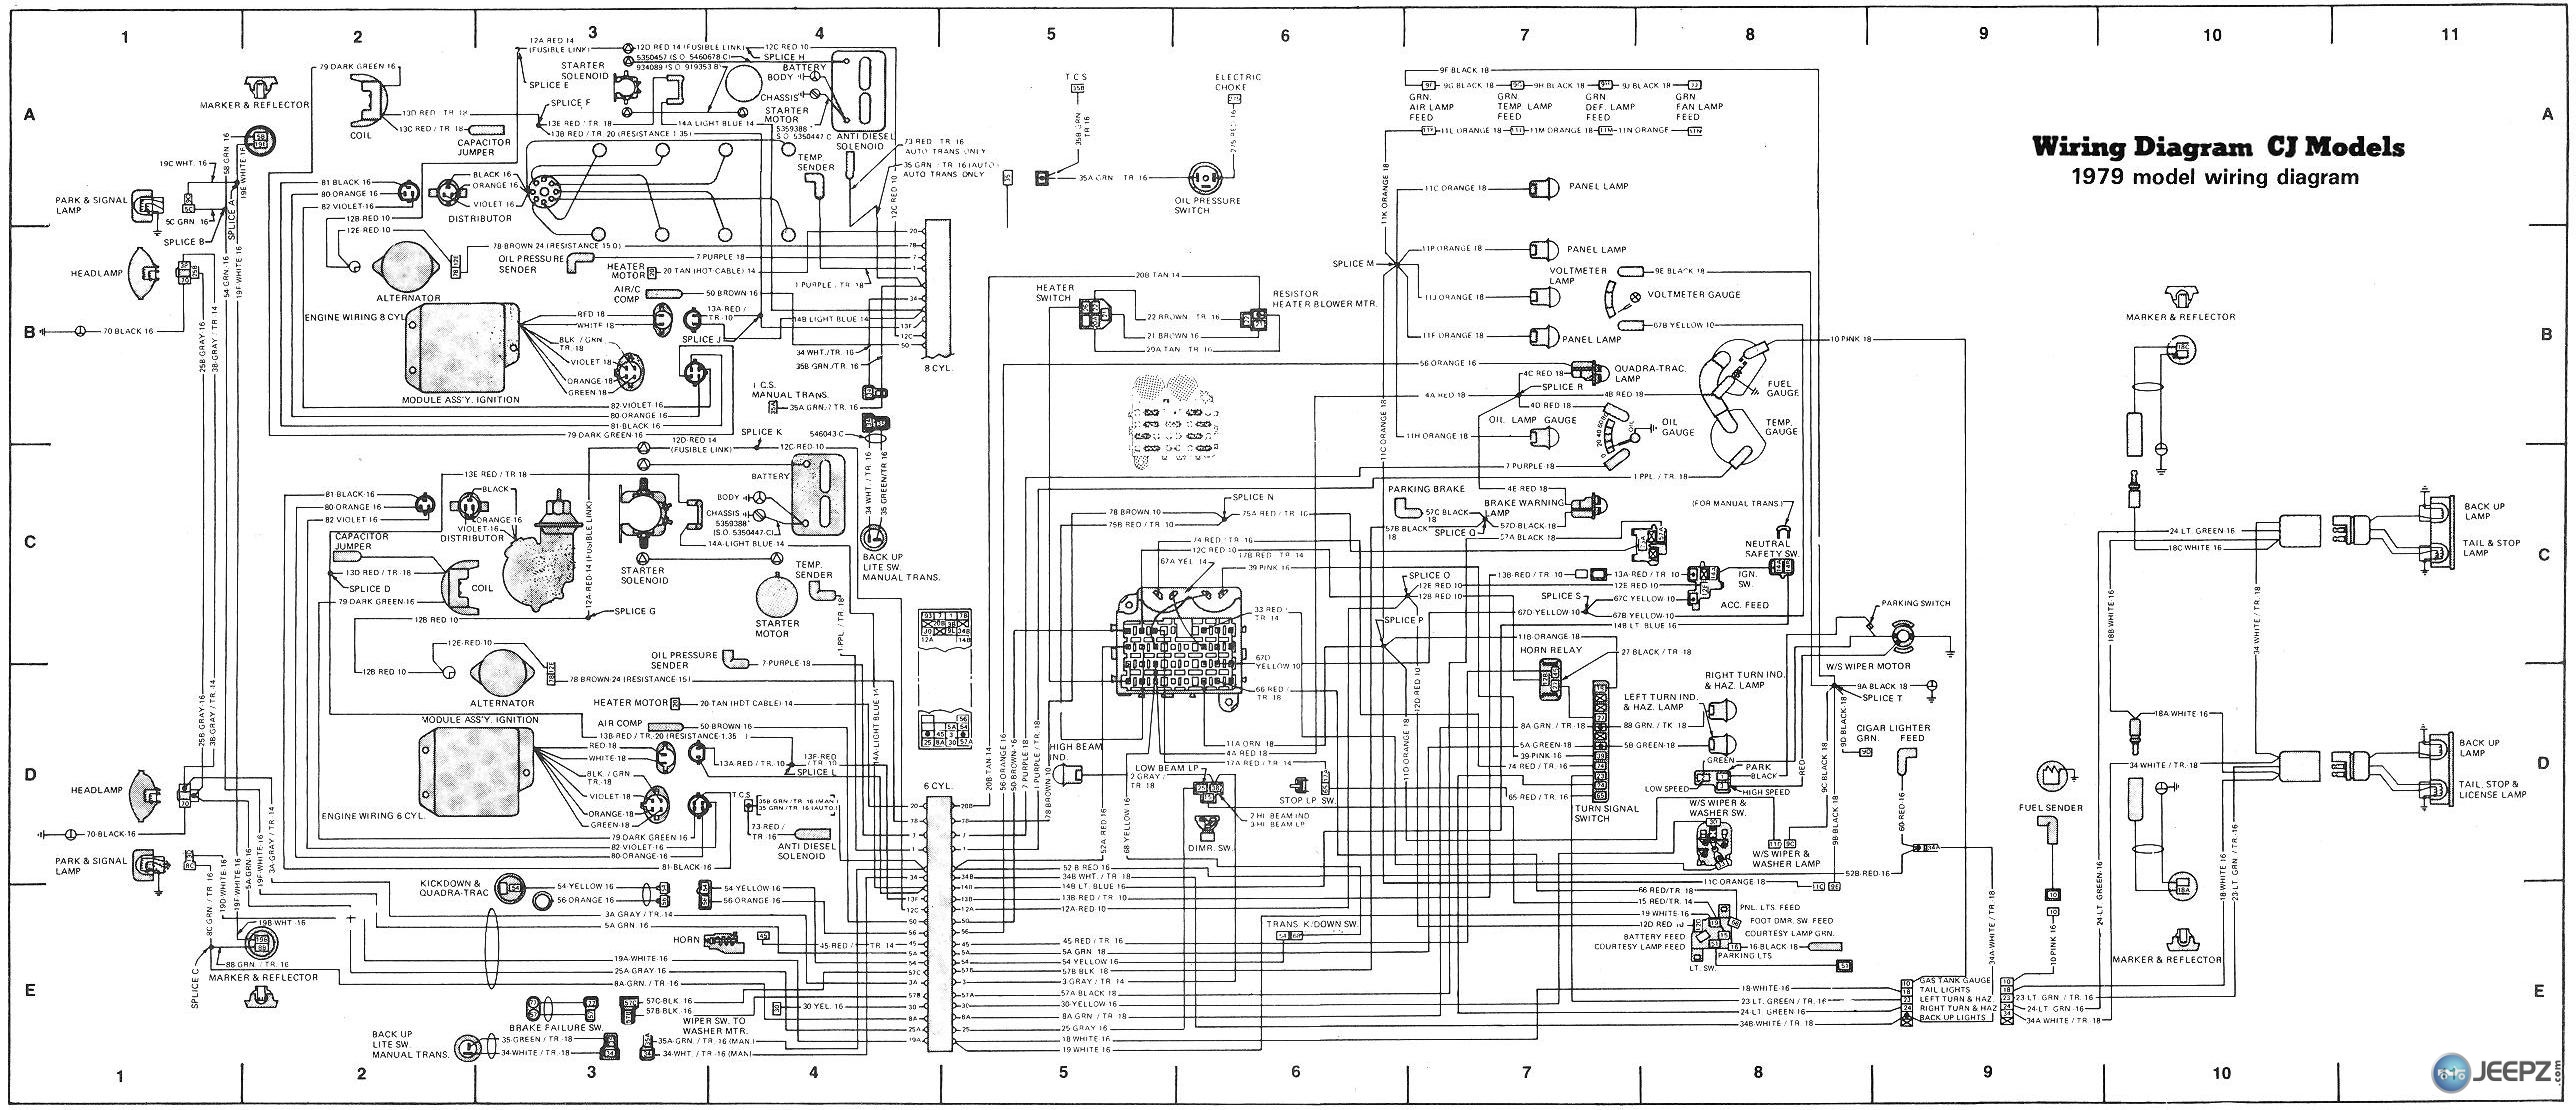 Wiring Schematics And Stuff Diagram Libraries Motion Sensor Os306u Jeep Electrical Explainedjeep Cj5 Diagrams Todays 2004 Liberty